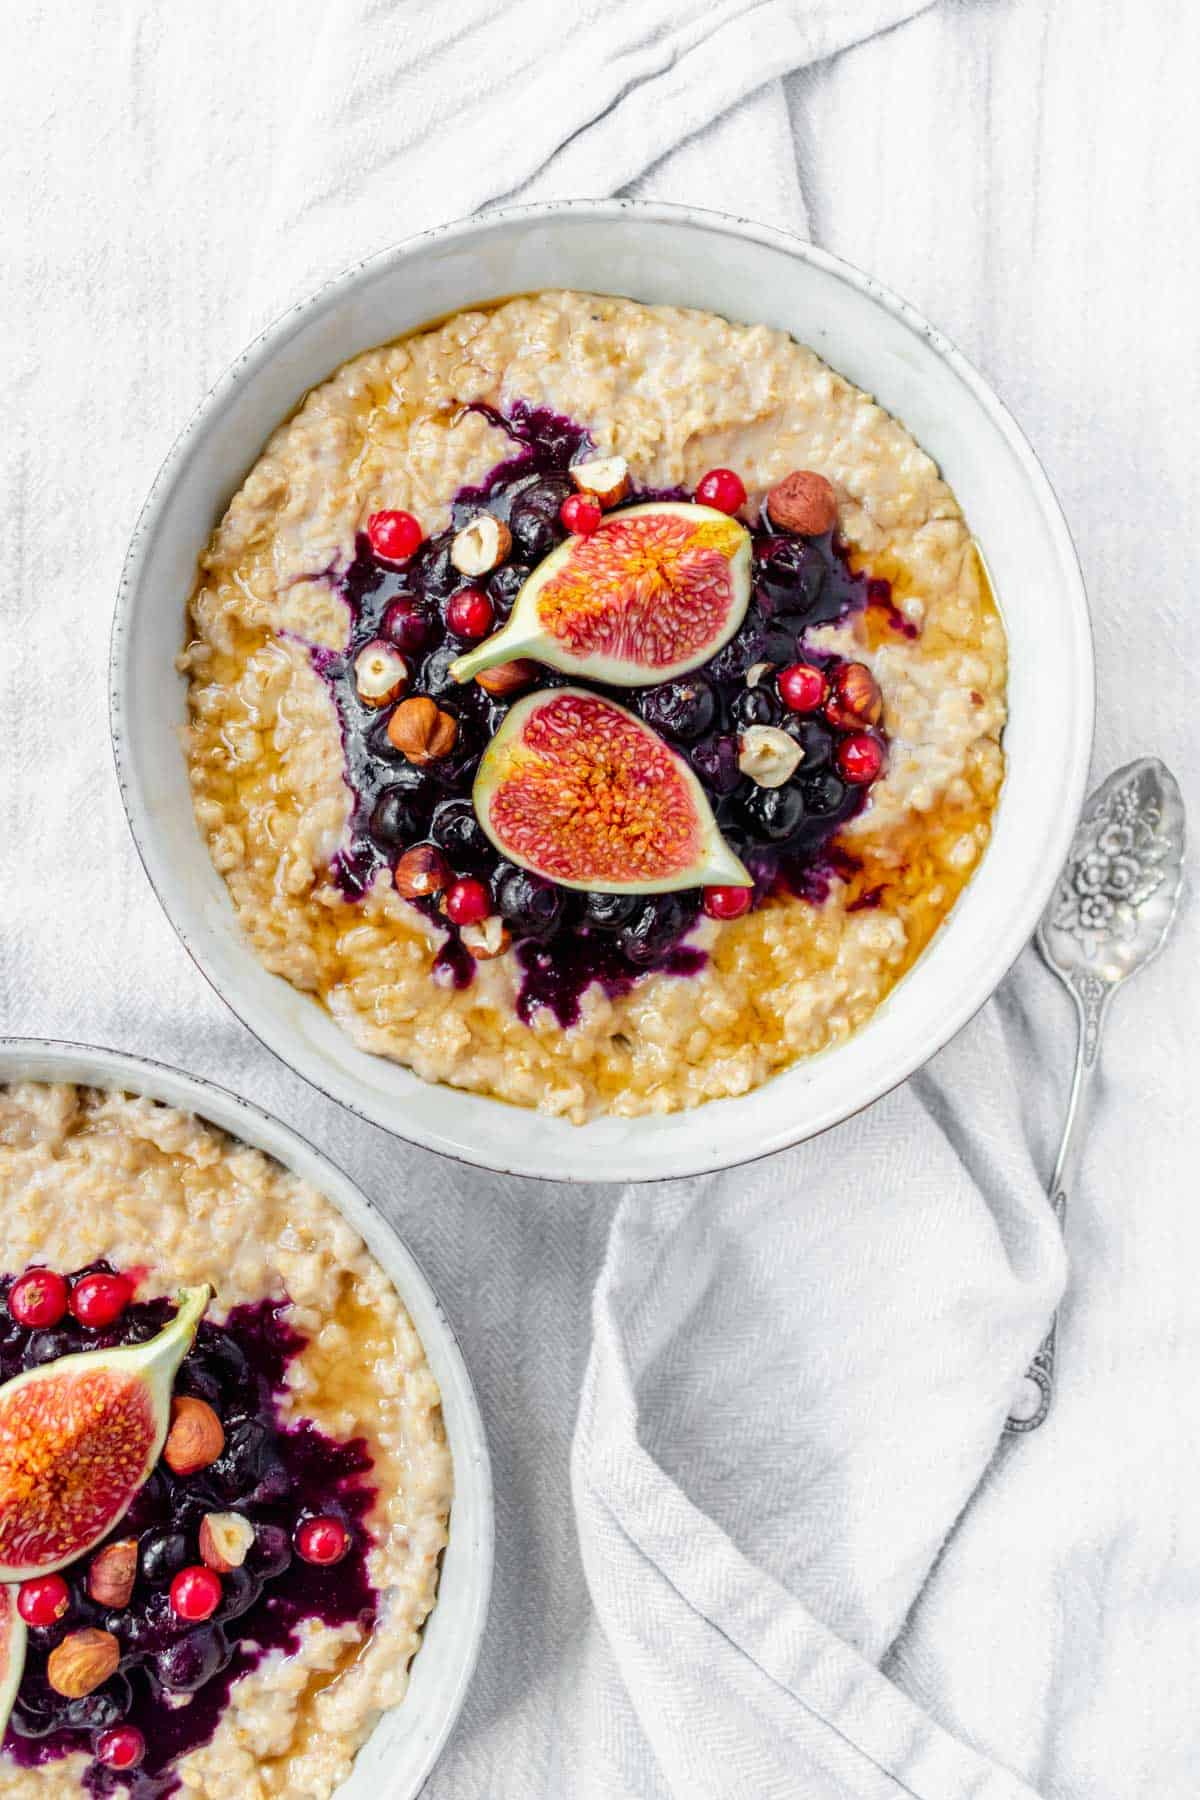 Two bowls of hazelnut porridge topped with blueberry sauce, figs and hazelnuts